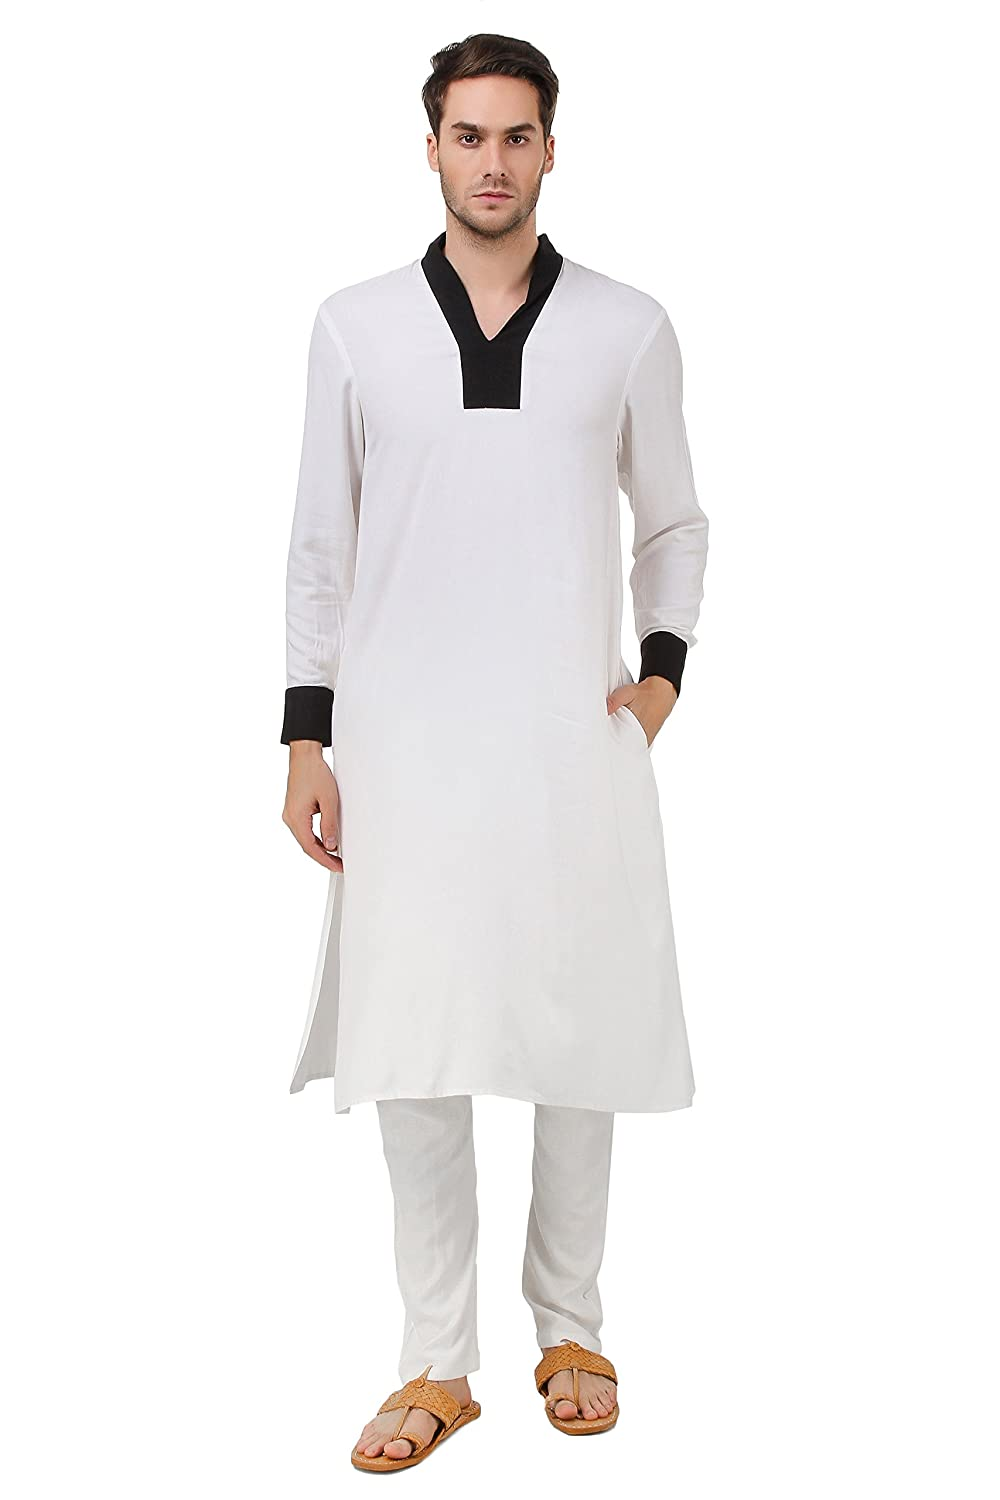 MyBatua White Rayon Kurta Pajama, Indian Dress Men's Clothes KP-011